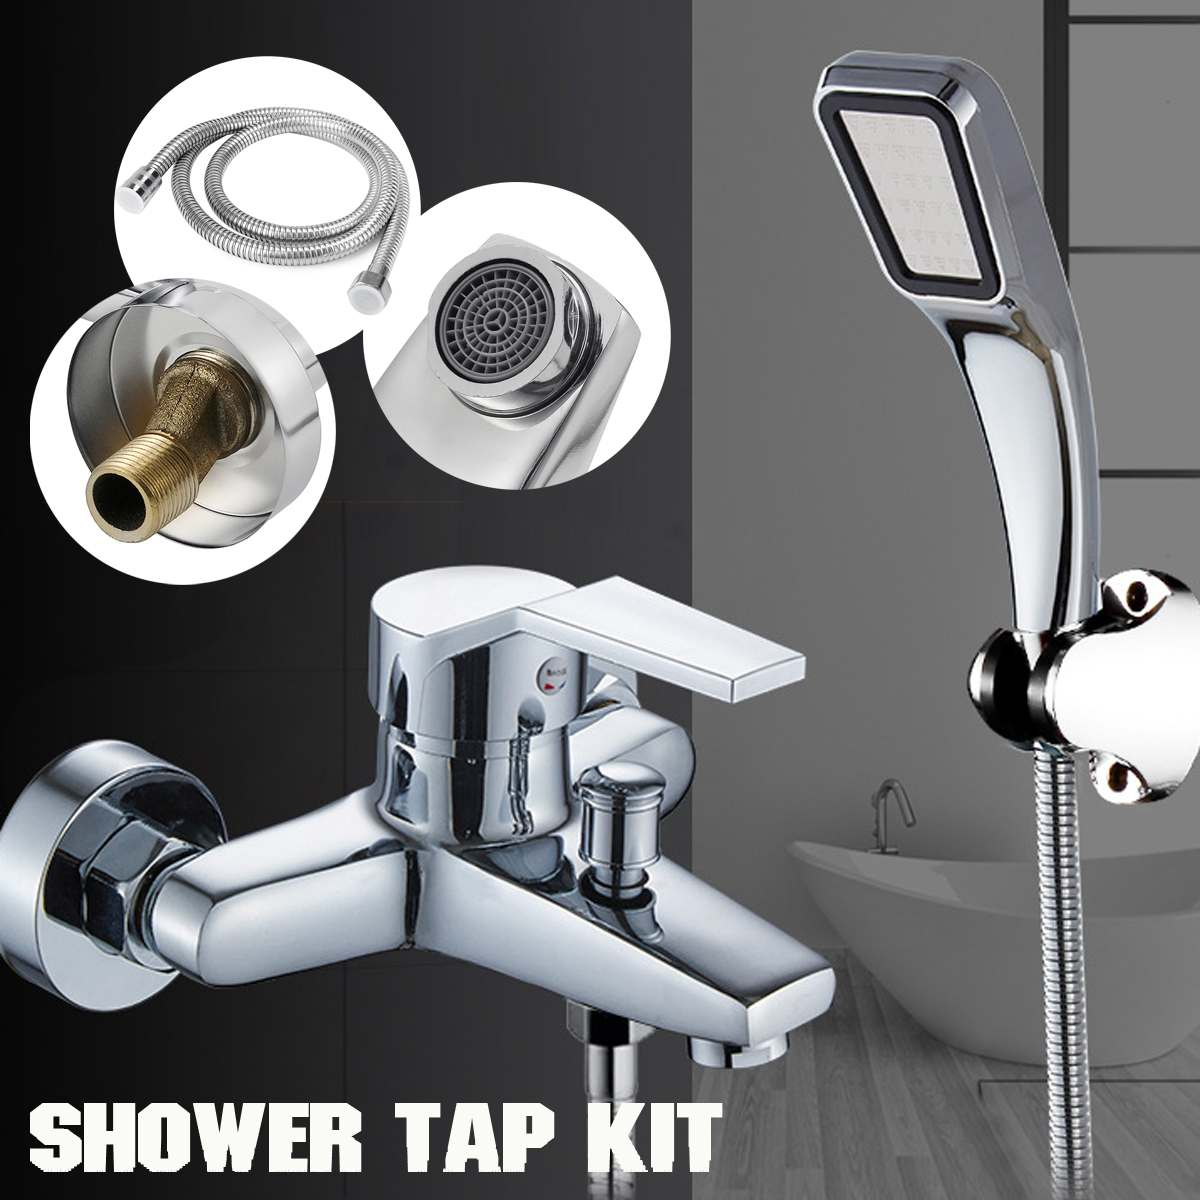 Becornce Bathtub Faucet Bath Faucet Mixer Tap Wall Mounted Hand Held Shower Head Kit Shower Faucet Sets Bath Water Mixer image